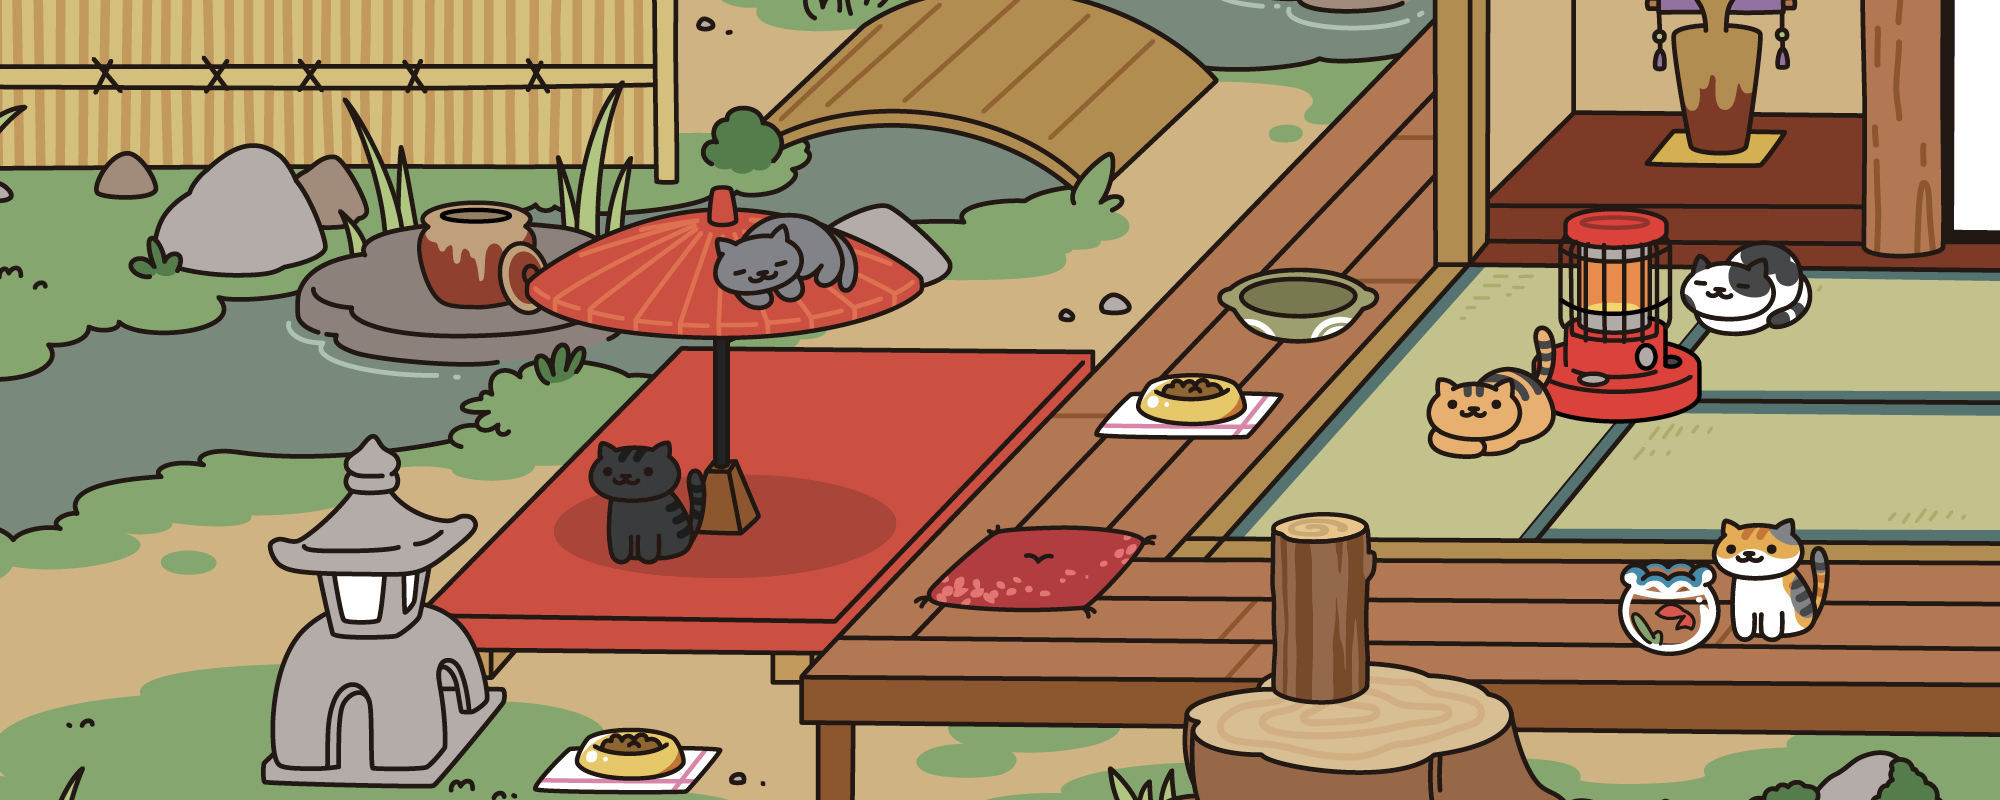 Neko Atsume Kitty Collector